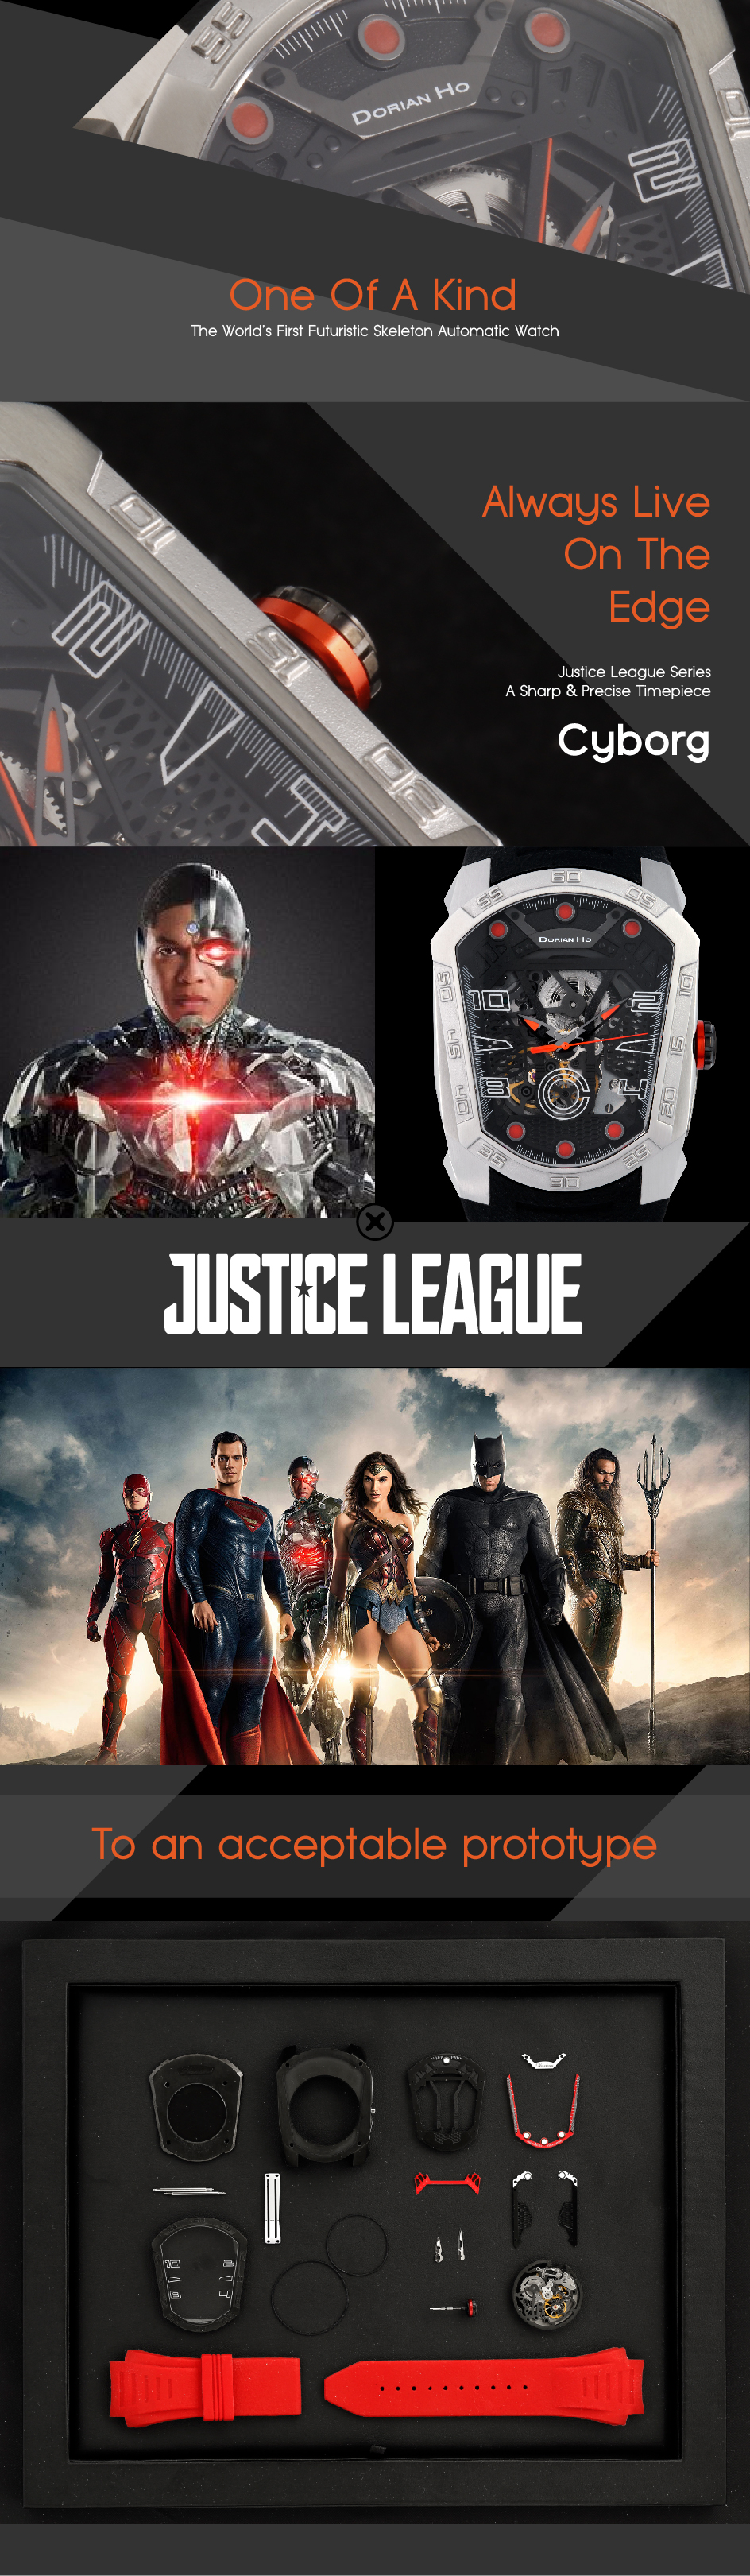 cyborg justice league dorian ho collection phantoms collaboration super hero automatic mechanical watch